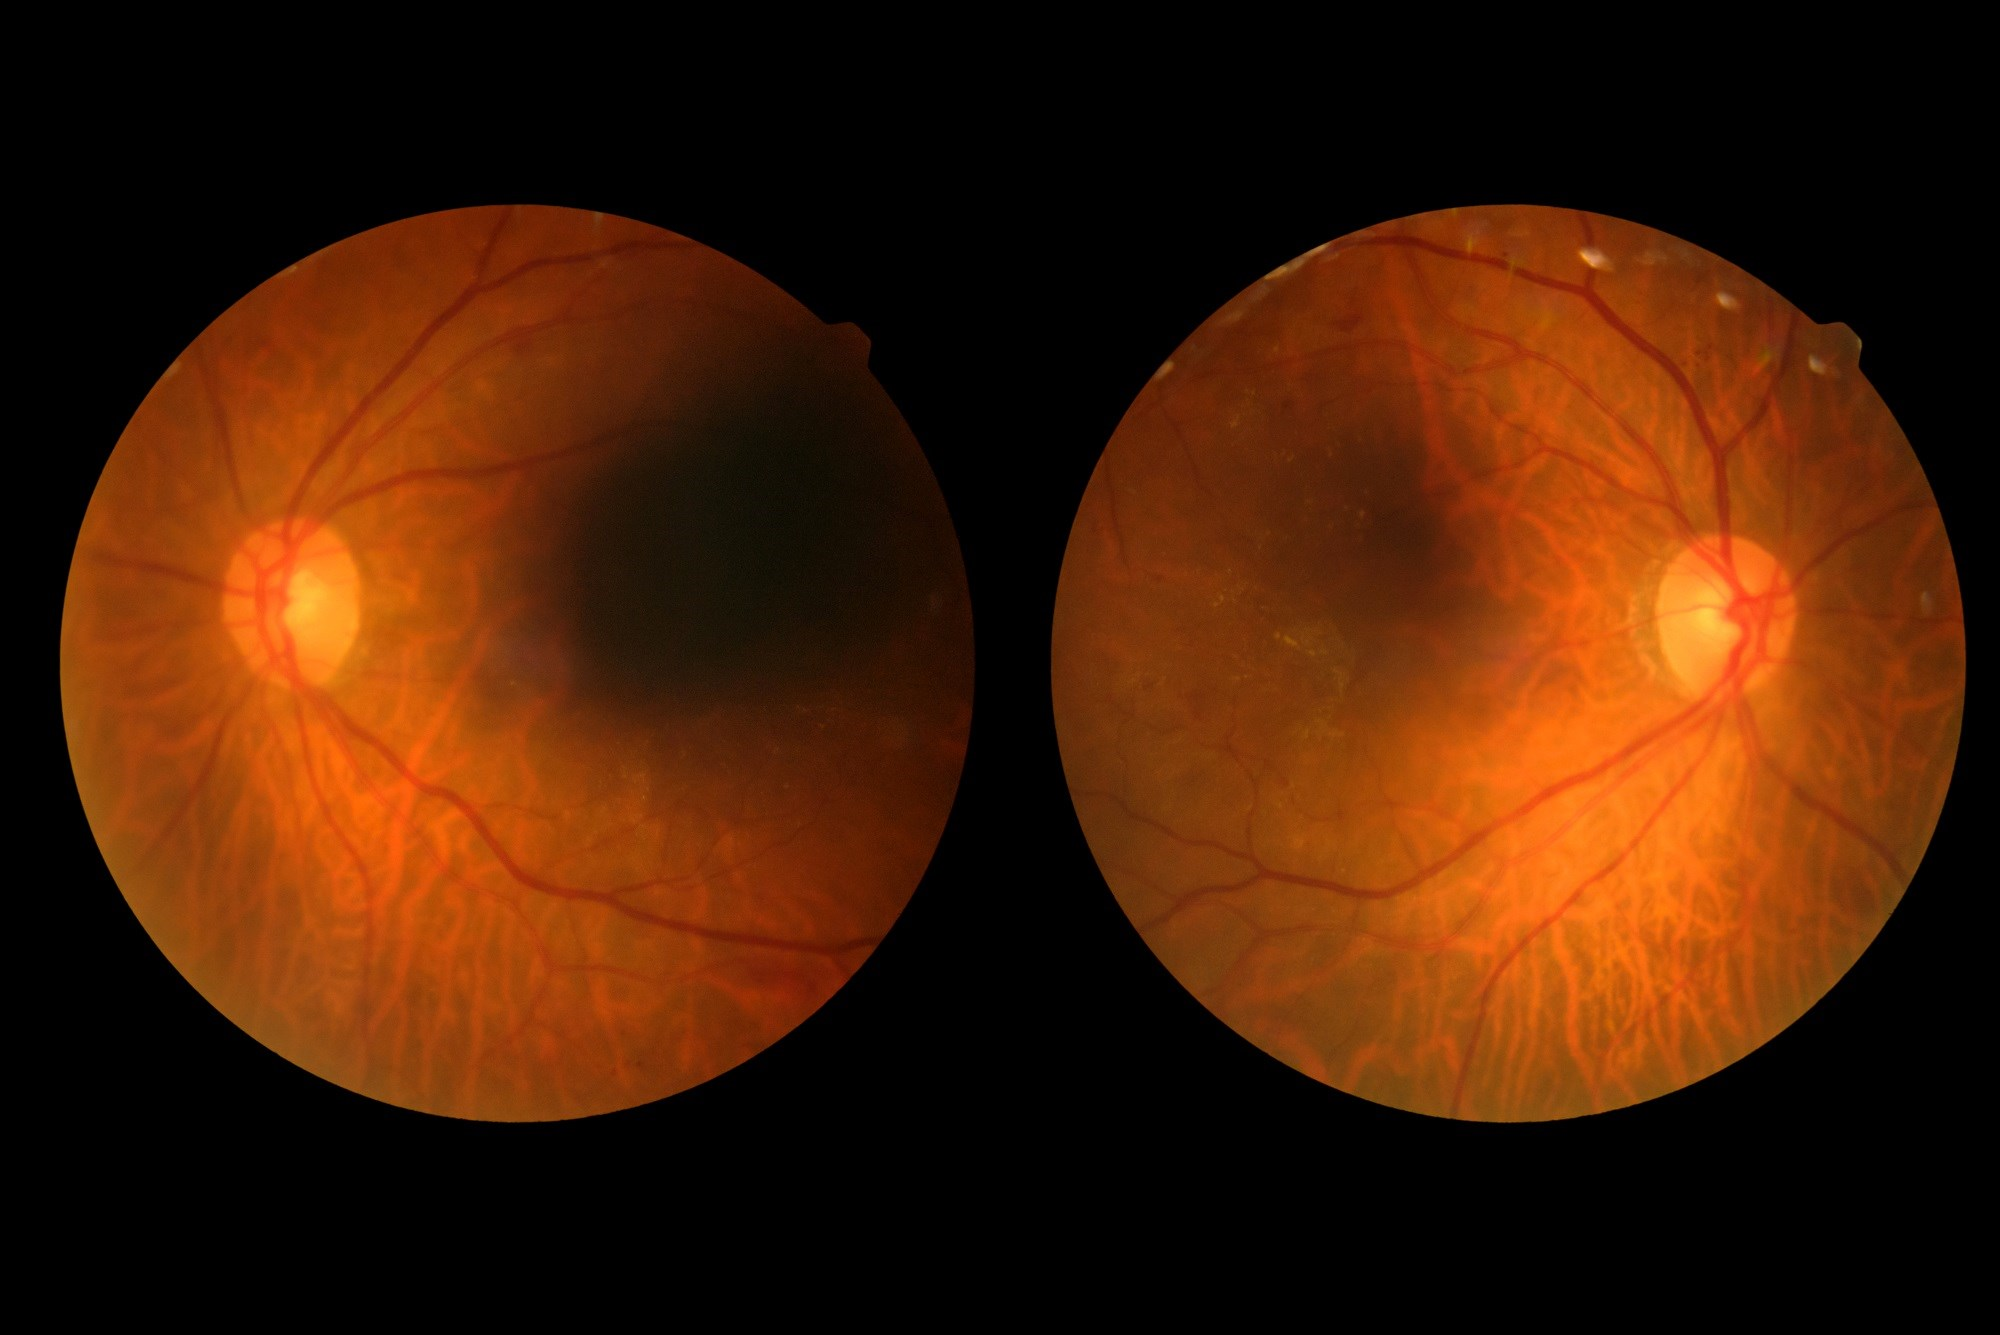 GLP-1 Receptor Agonists Not Associated With Increased Diabetic Retinopathy Risk